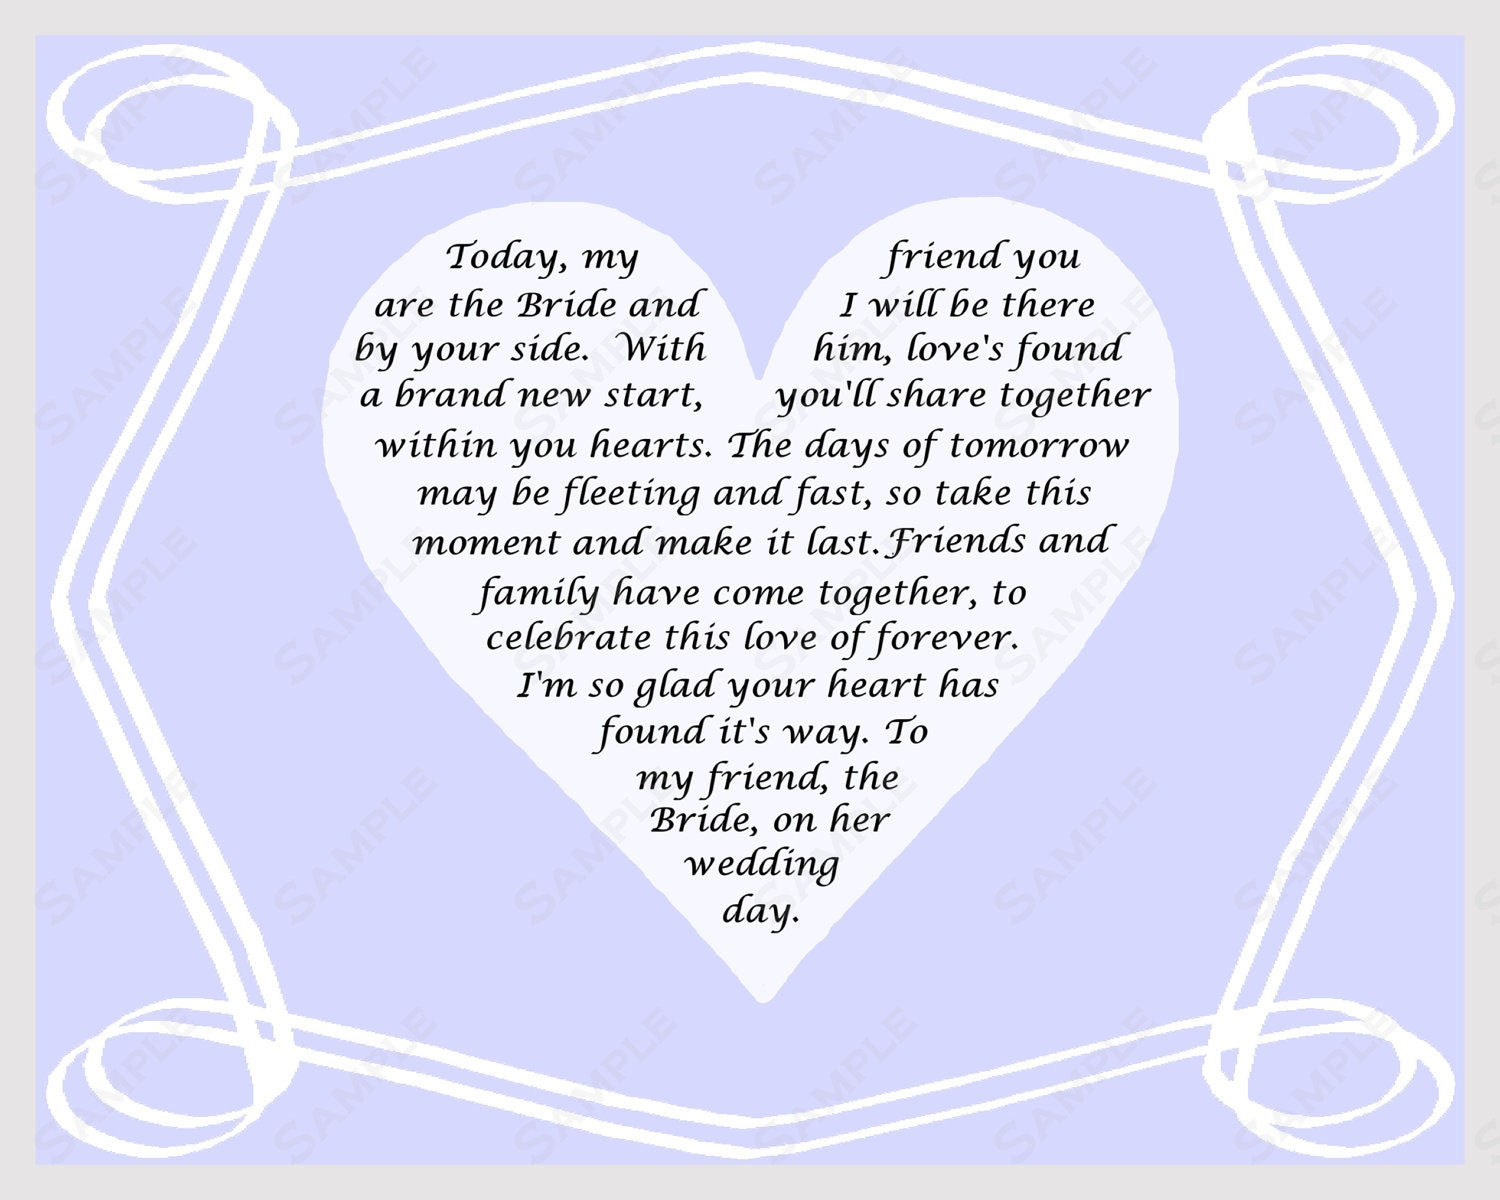 Wedding Day Gift Poem : Gift for Bride on Wedding Day Poem from Friend INSTANT DOWNLOAD - On ...